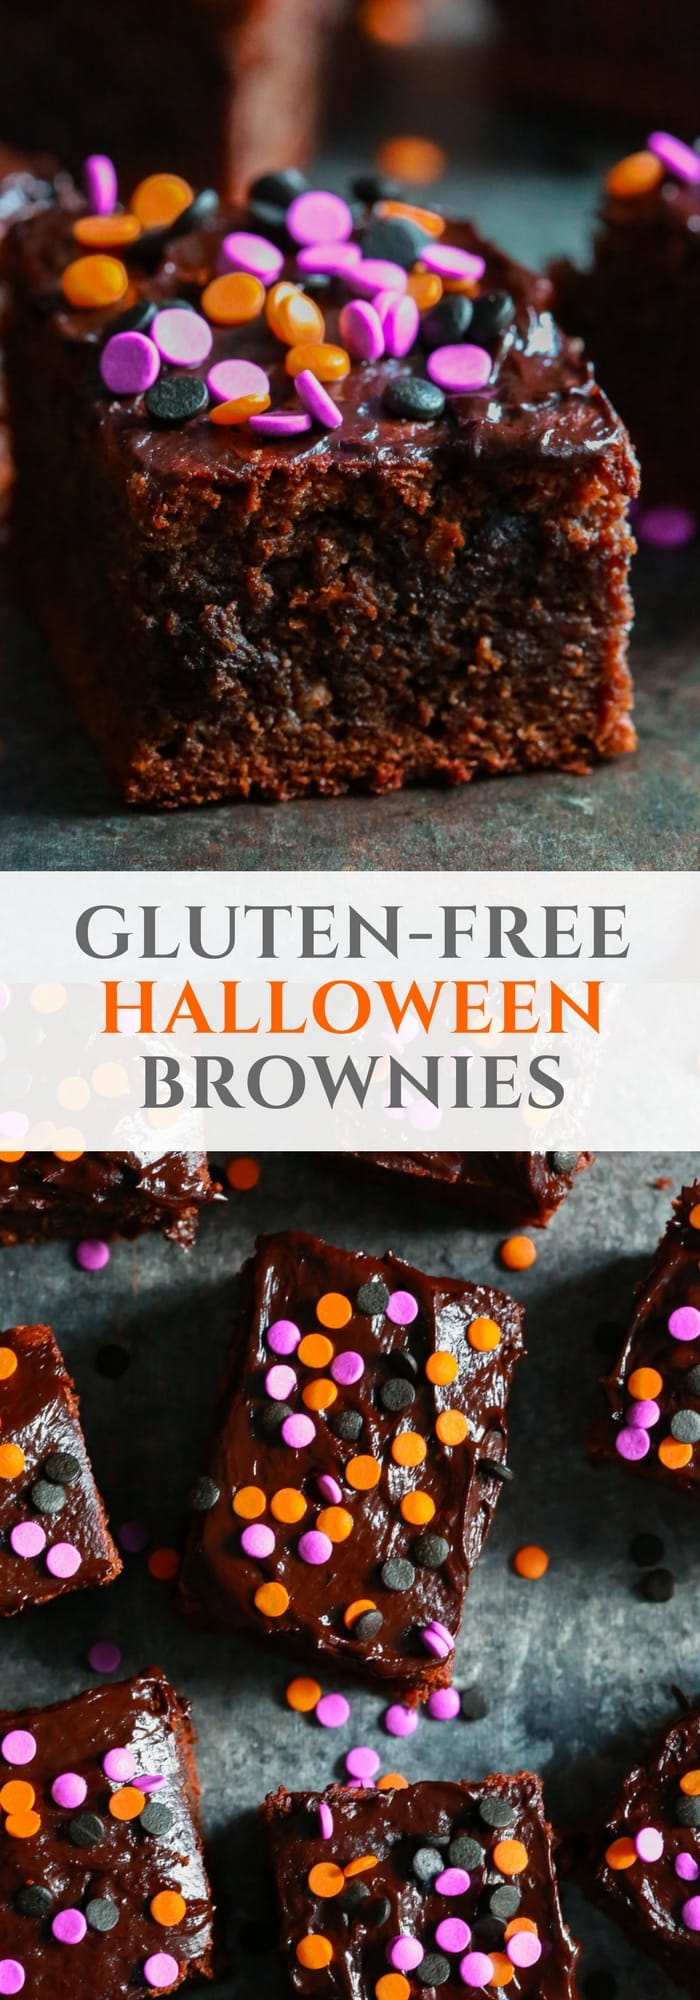 Ready to have a delicious Halloween treat without feeling guilty? I bet you are, so make these Gluten-free Halloween Brownies with your kids using only almond butter, instead of regular flour!